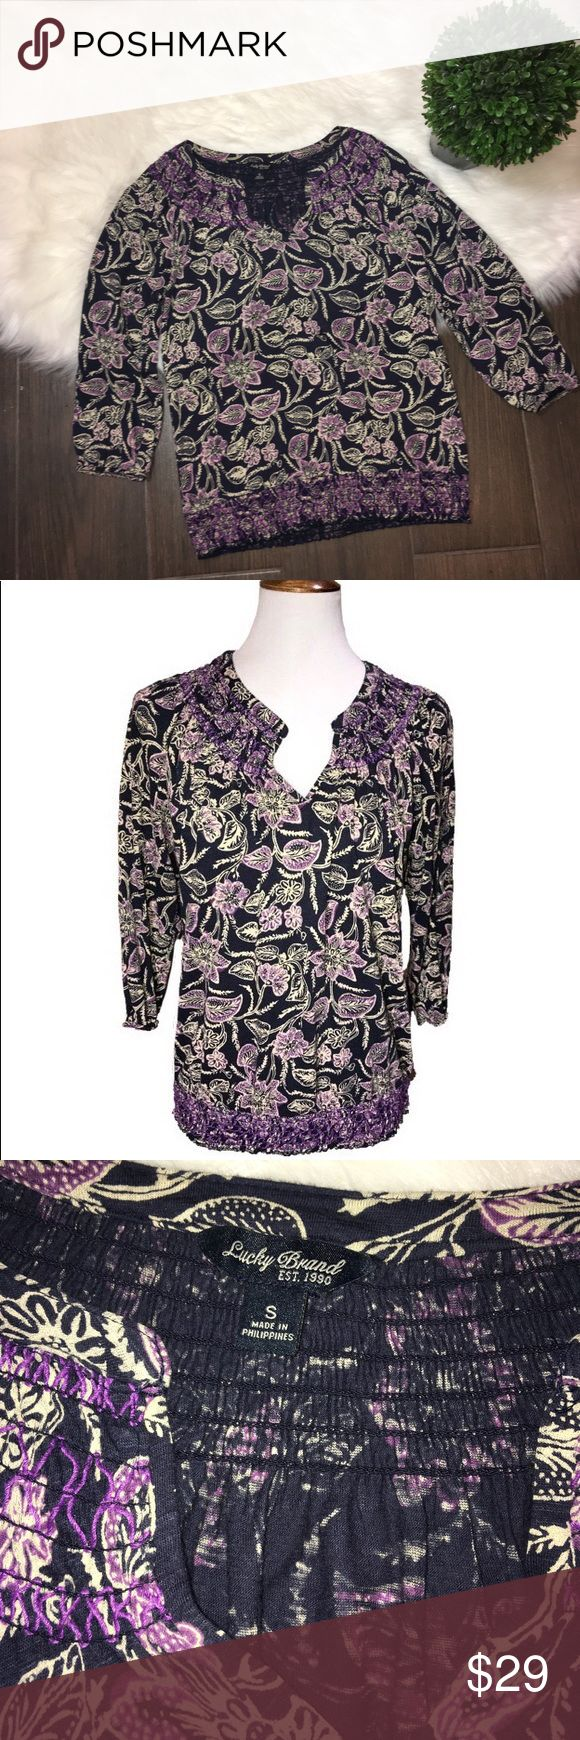 Lucky brand floral boho peasant blouse Lucky Brand boho style peasant blouse. Navy blue and purple floral print print. Smocked neck and smocked elastic waistband. Sleeveless are 3/4 length Stretch jersey fabric. Great condition 60% cotton 40% modal Lucky Brand Tops Blouses